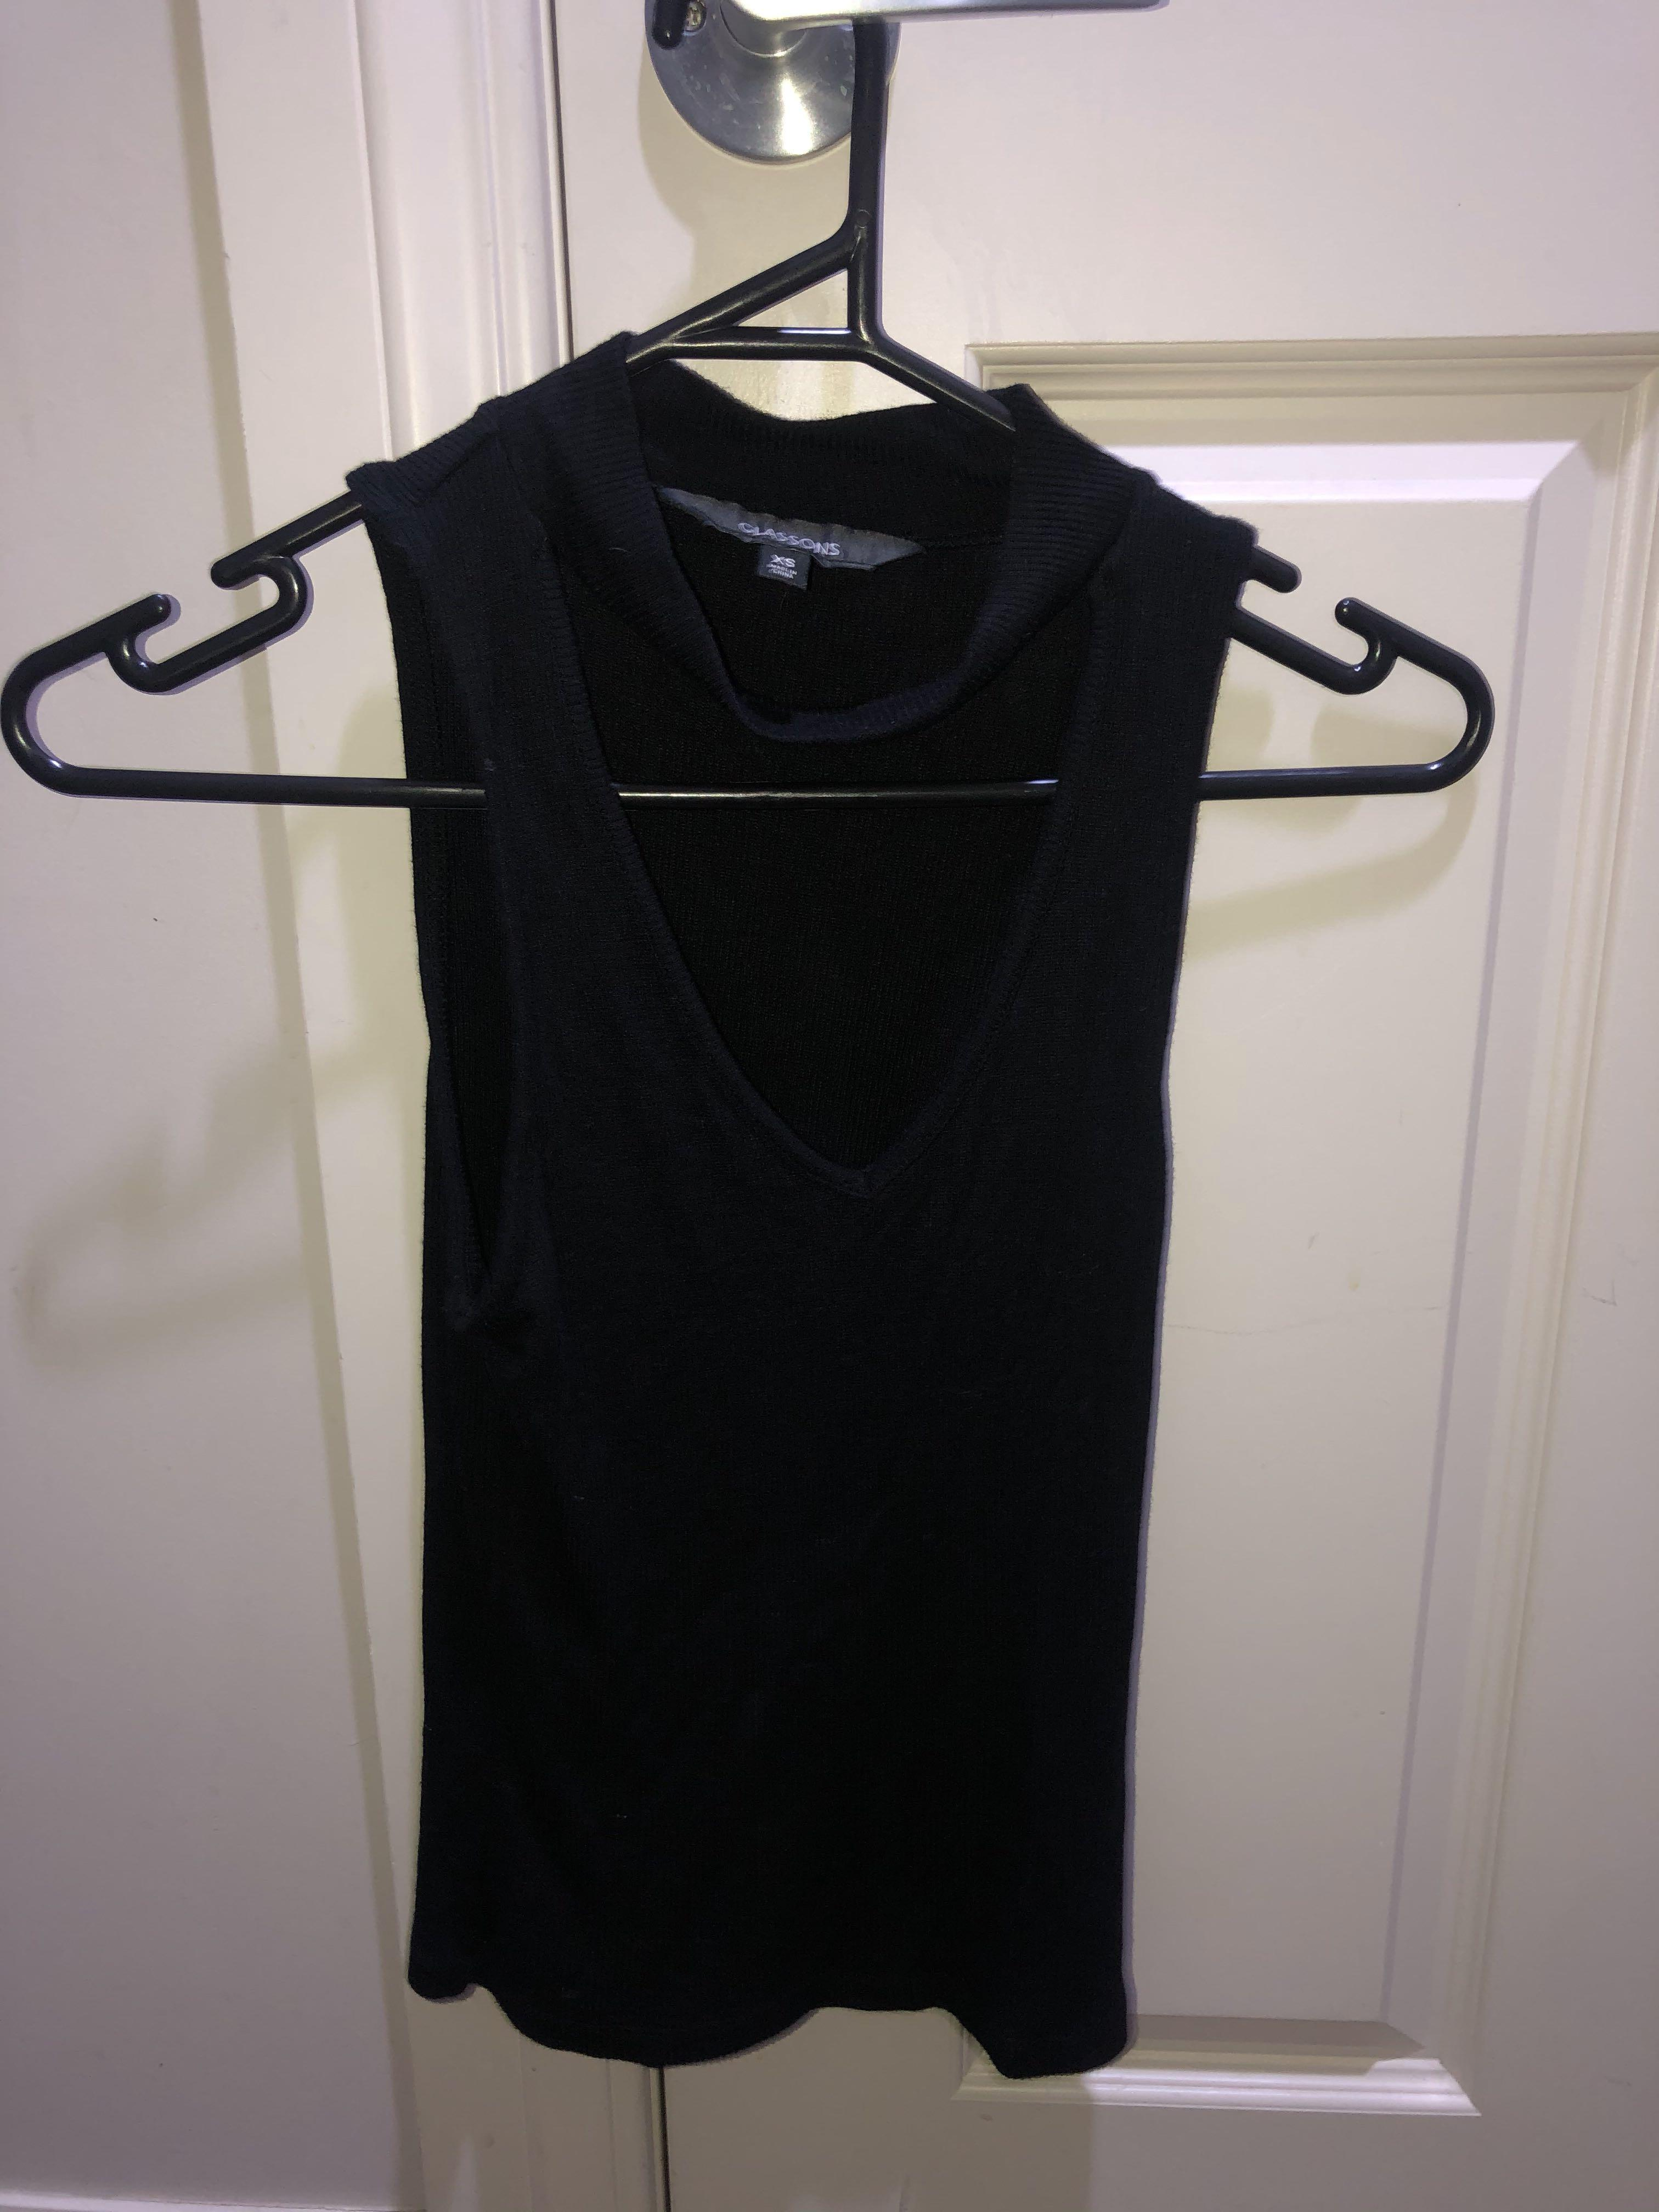 Glassons knit tank top